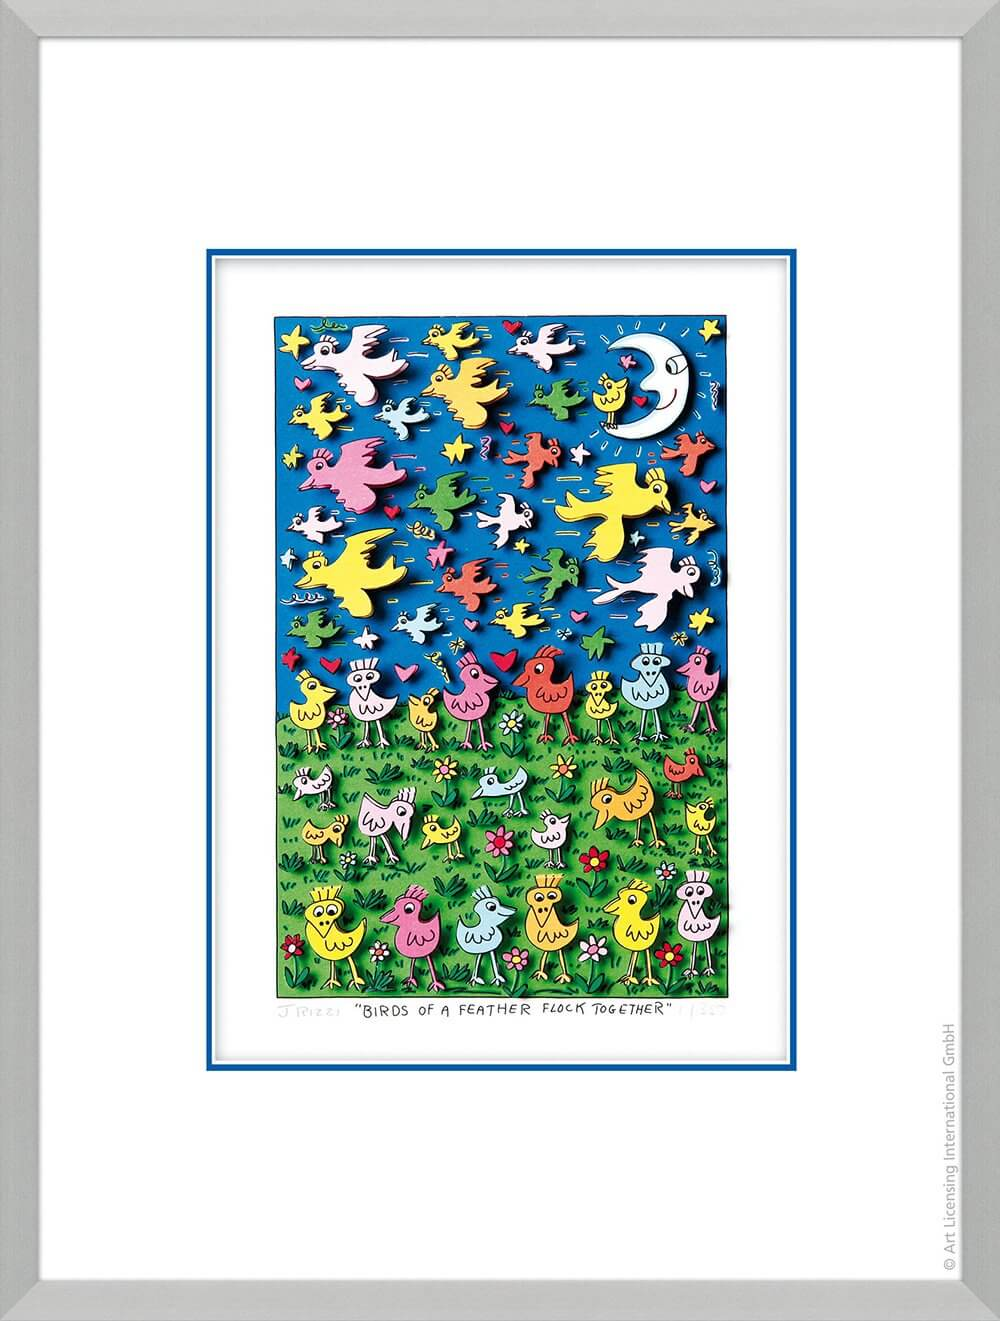 James Rizzi: Birds Of A Feather Flock Together